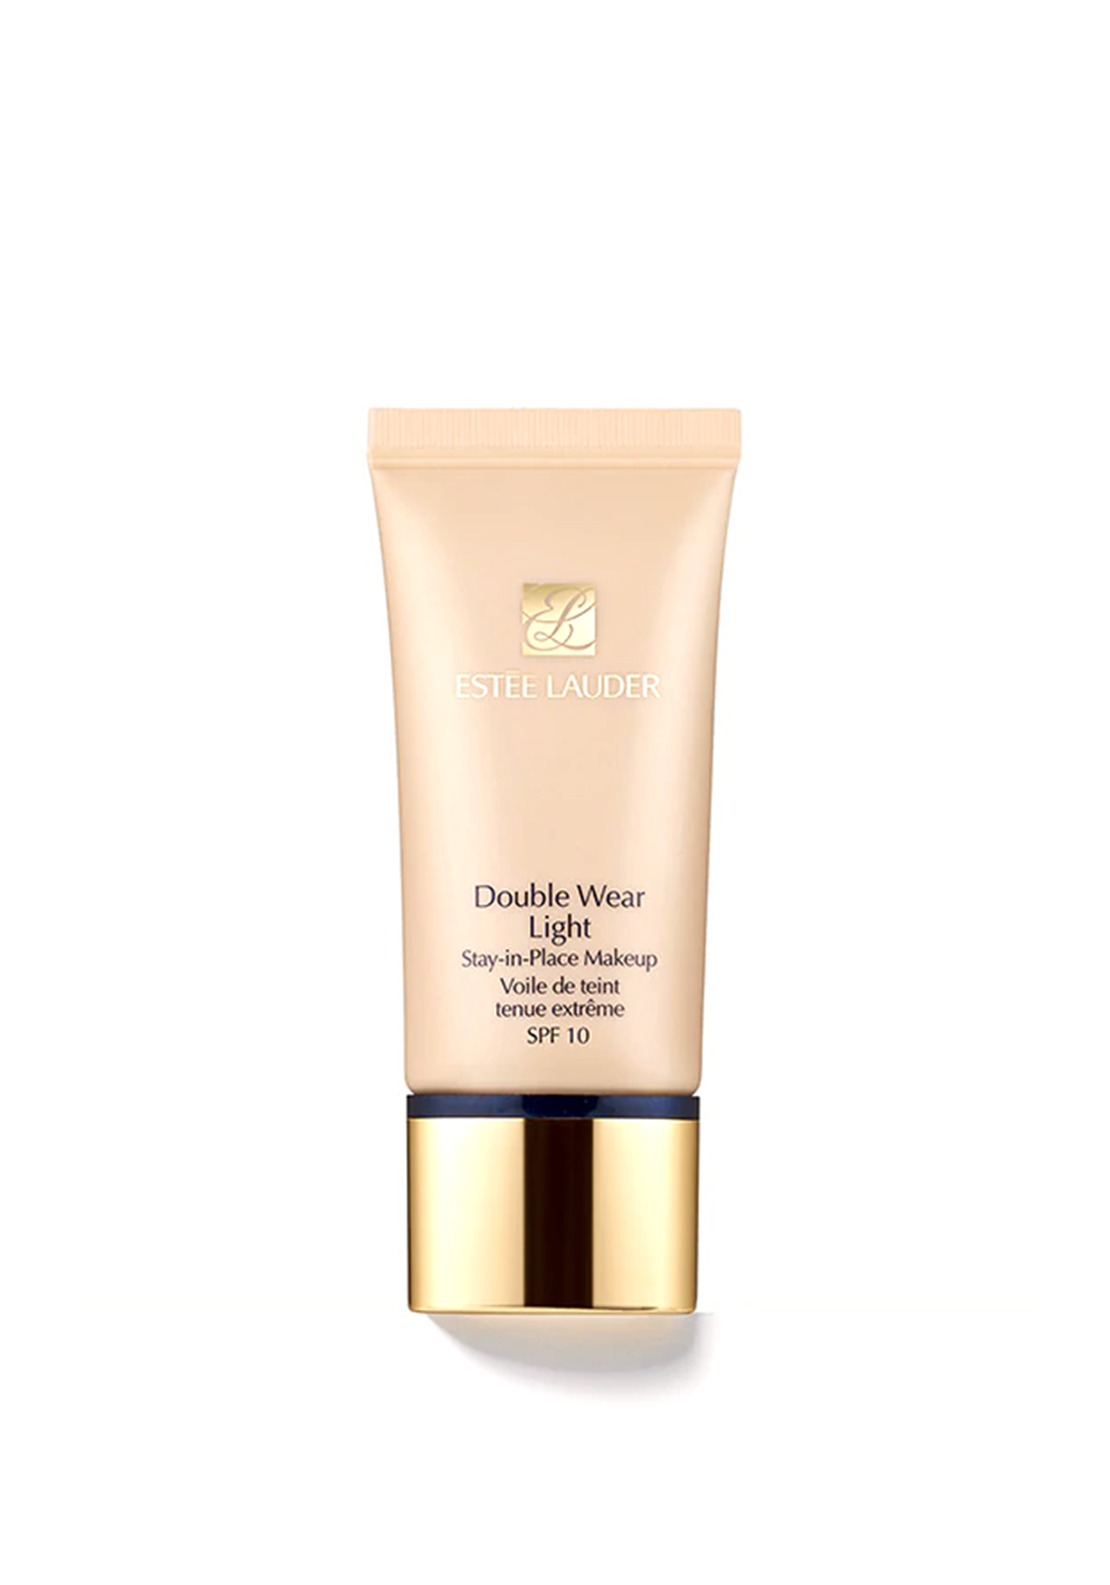 Estee Lauder Double Wear Light Stay-in-Place Make Up SPF 10, Intensity 4.0